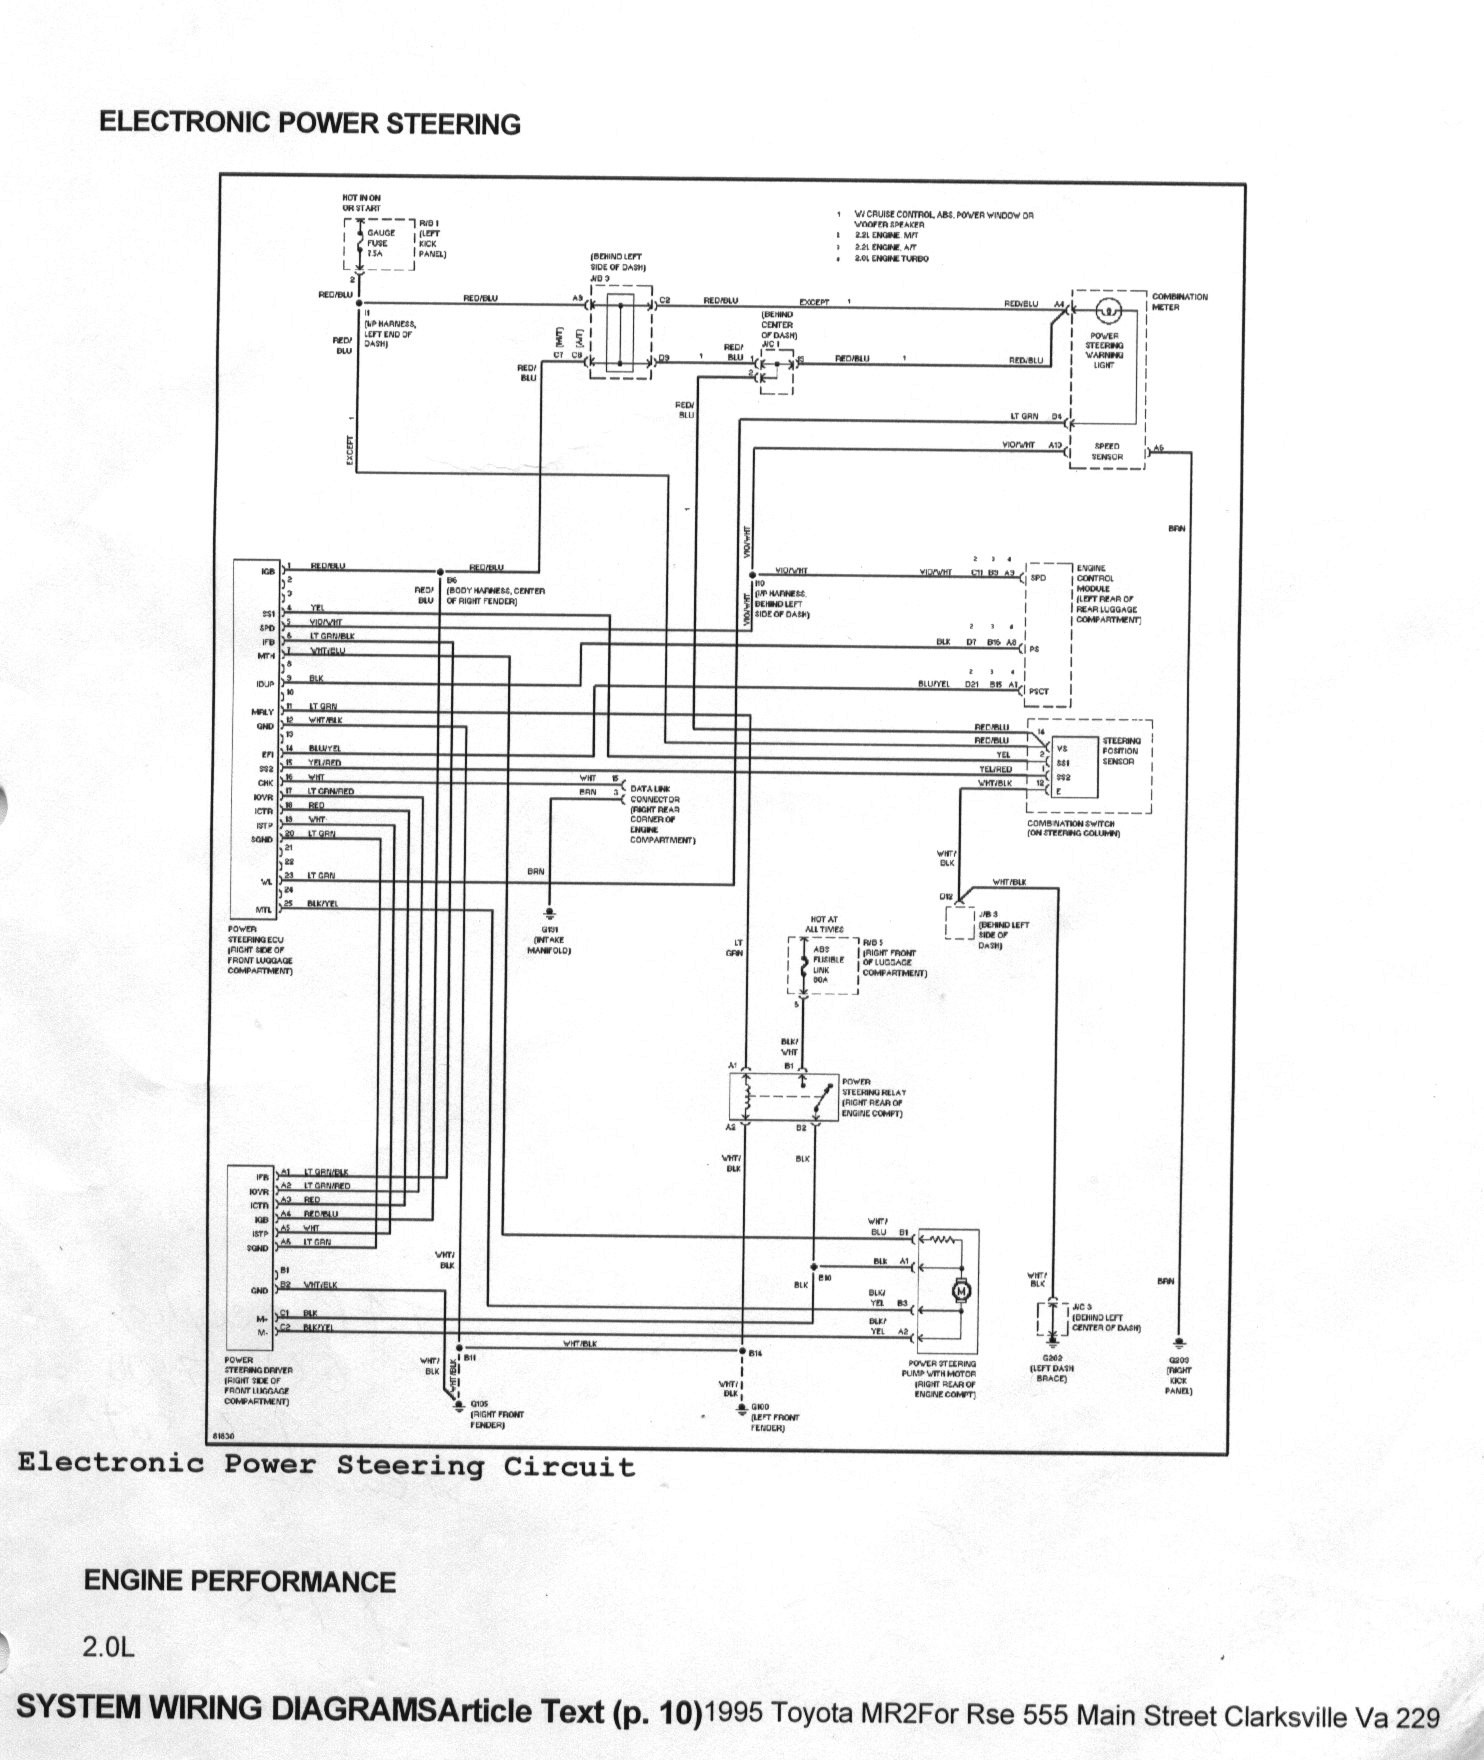 Circuit Diagram 1 · Circuit Diagram 2 · Connector Layout